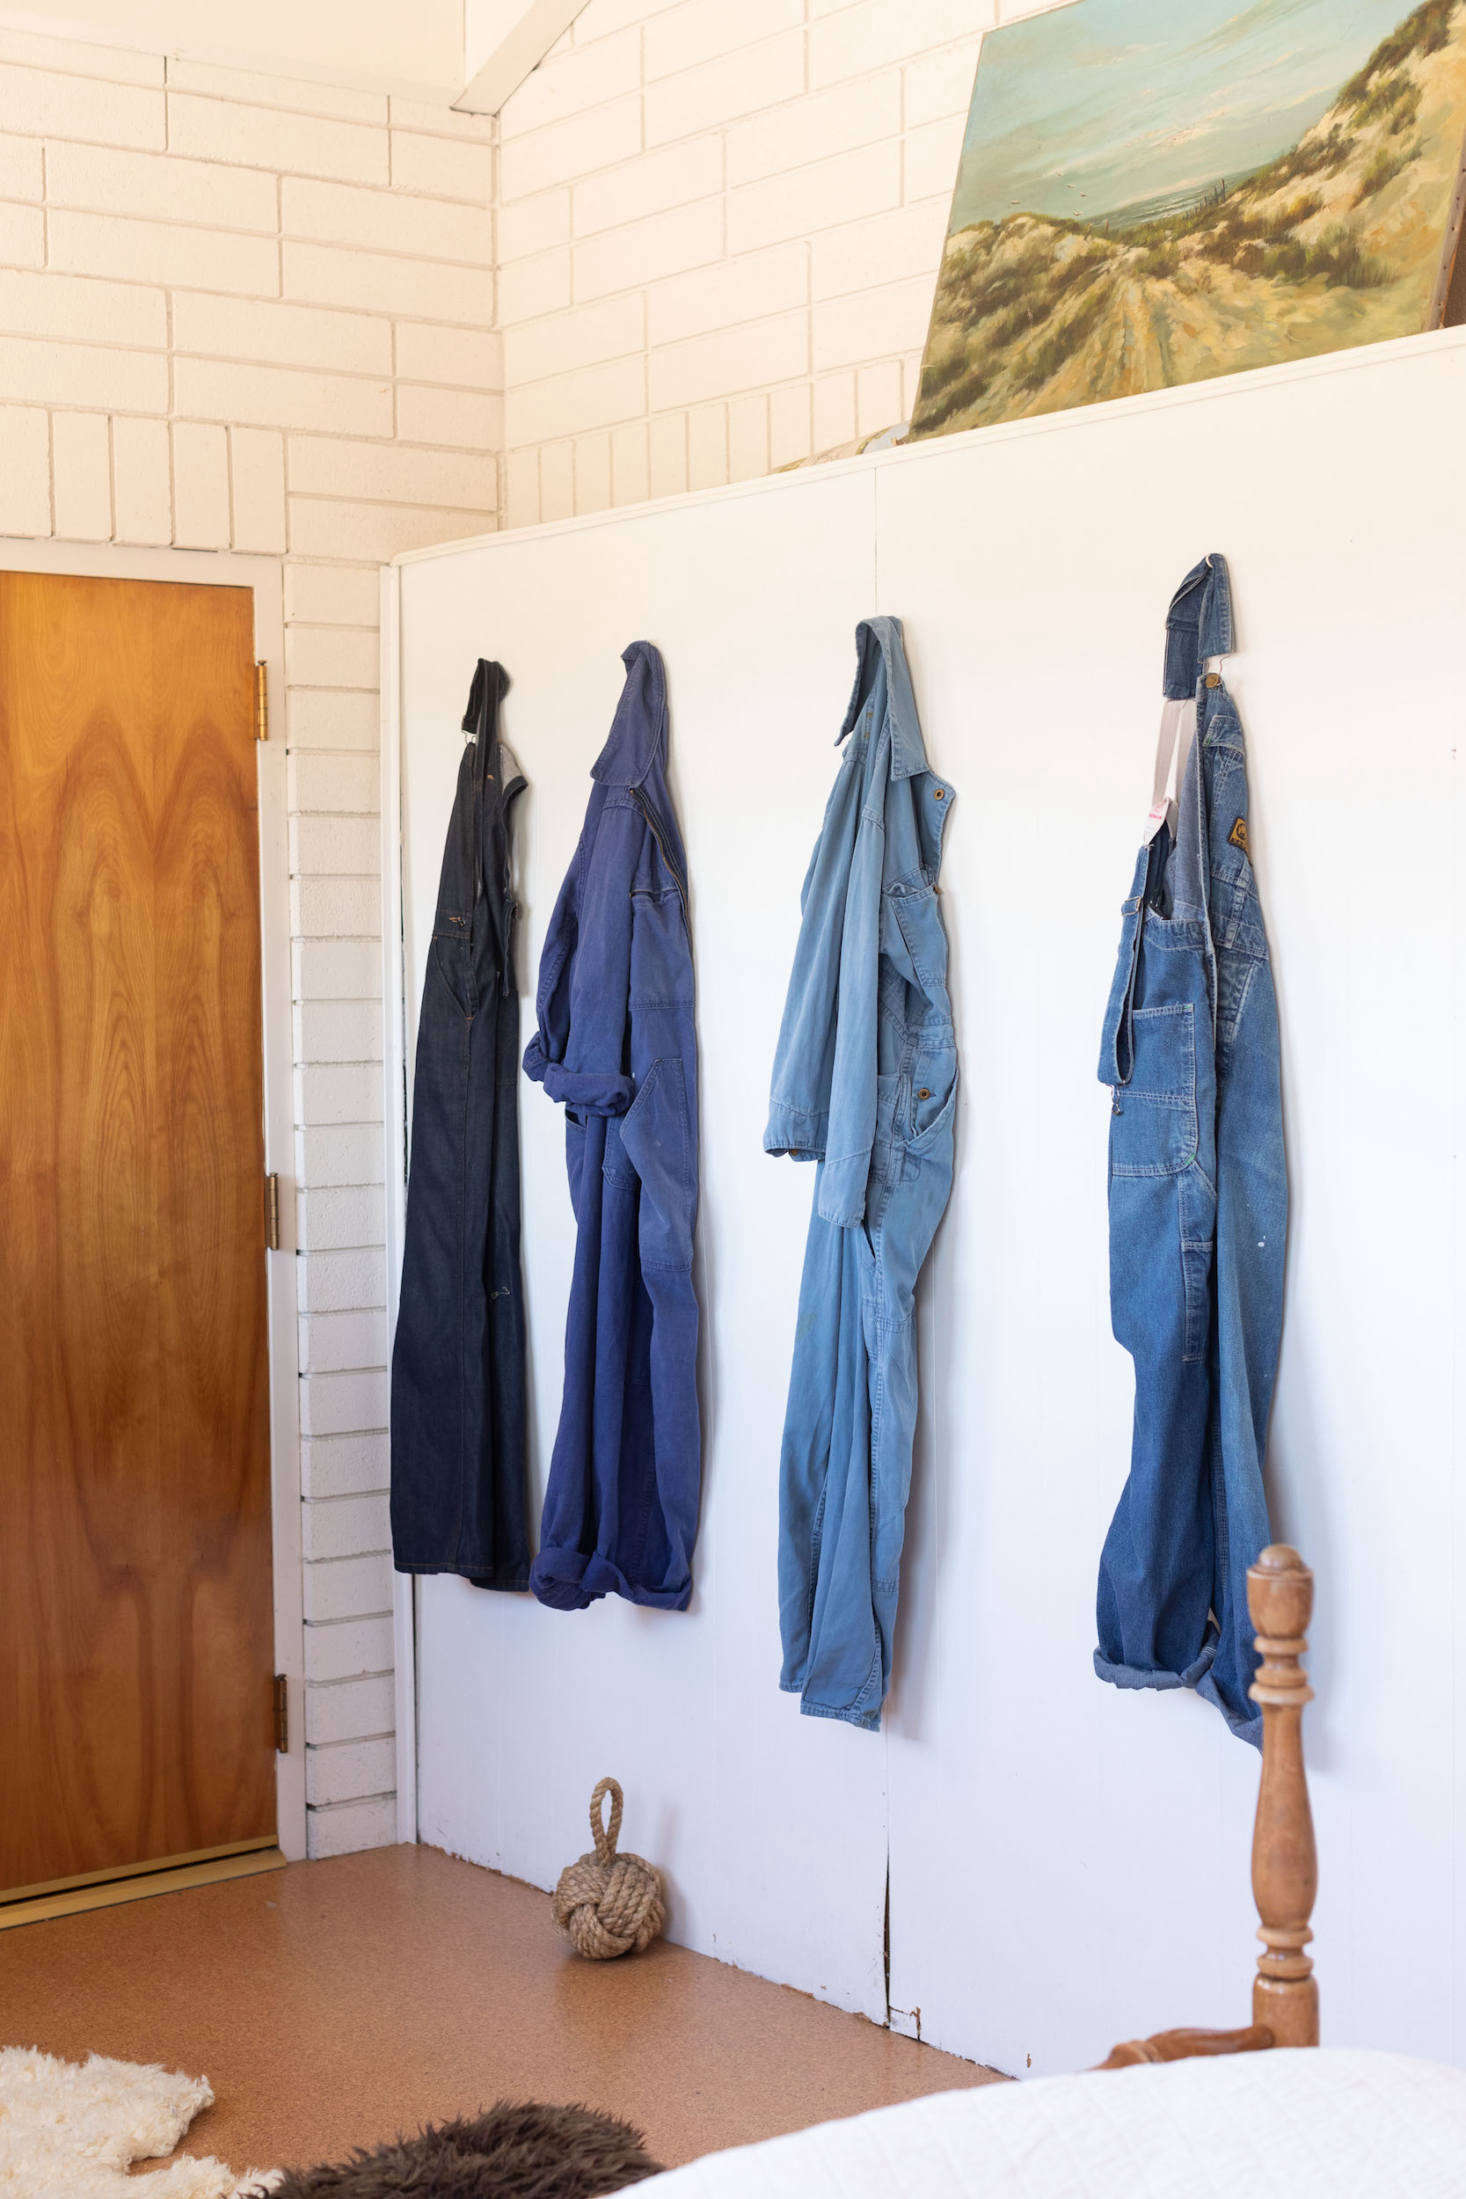 A row of work overalls and jumpsuits create a beautiful vignette.